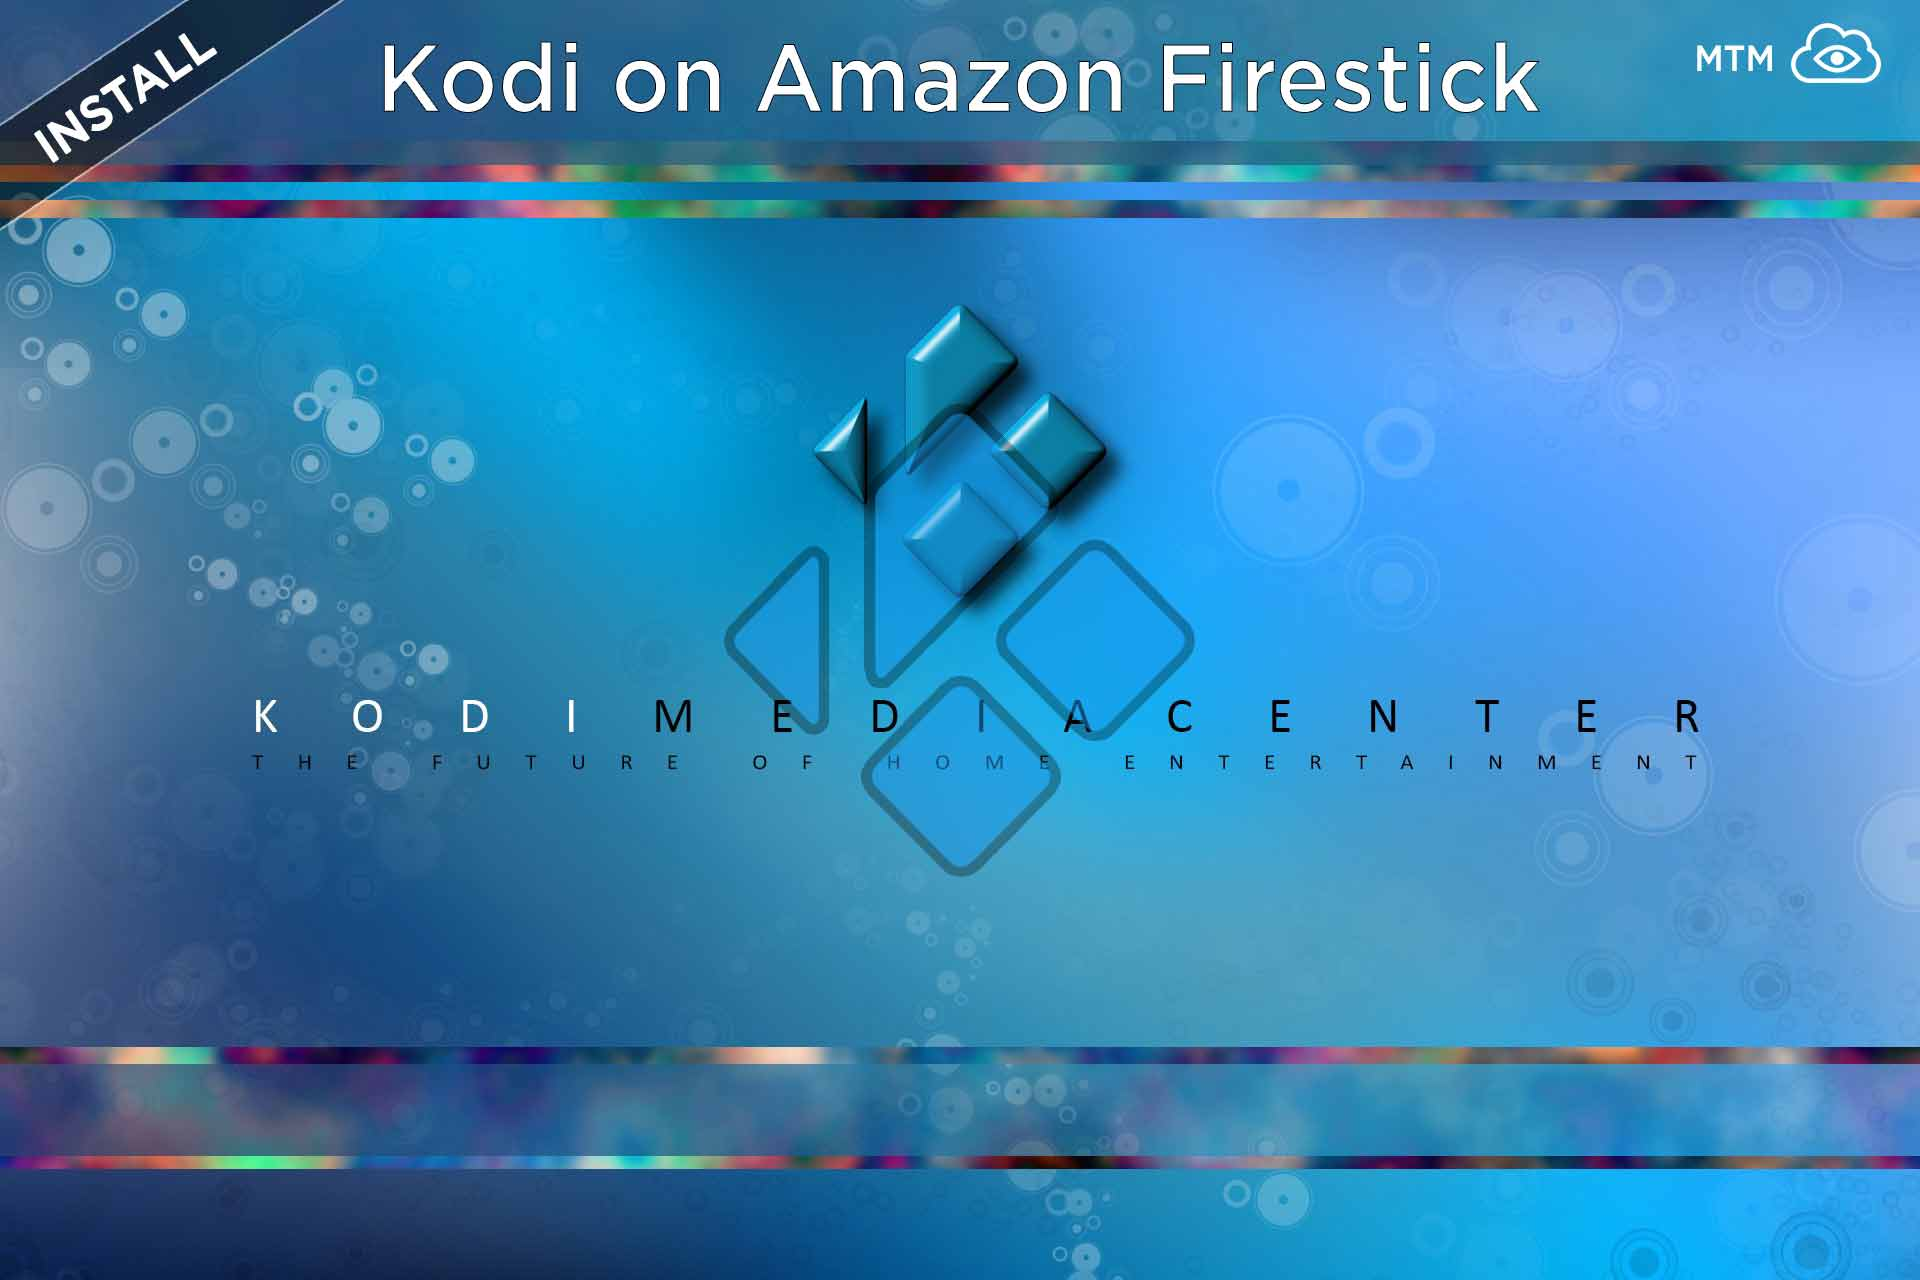 How to Install Kodi on Firestick [Fastest Working New July 2019 Update]